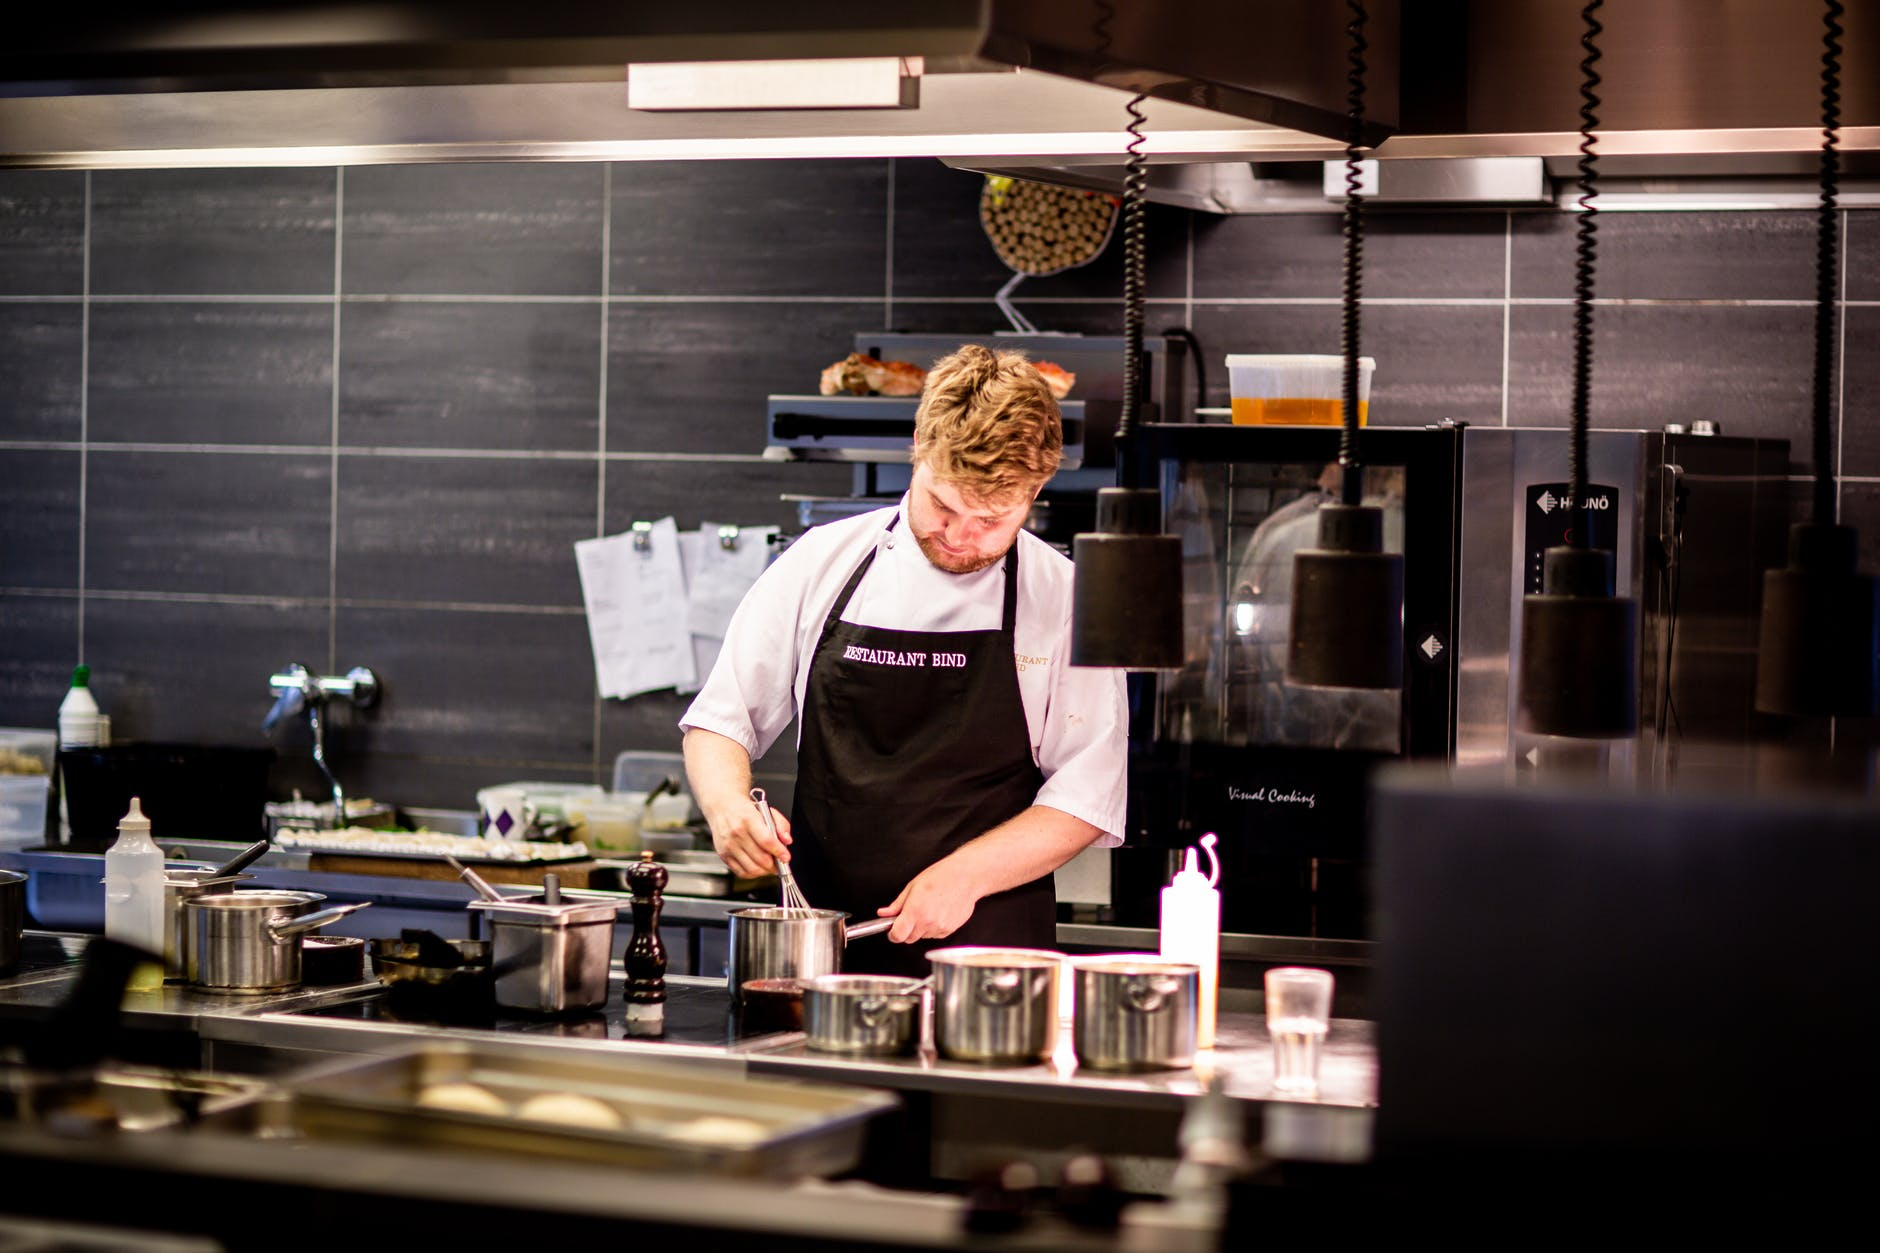 How to Choose the Best Restaurant Equipment for Your Business